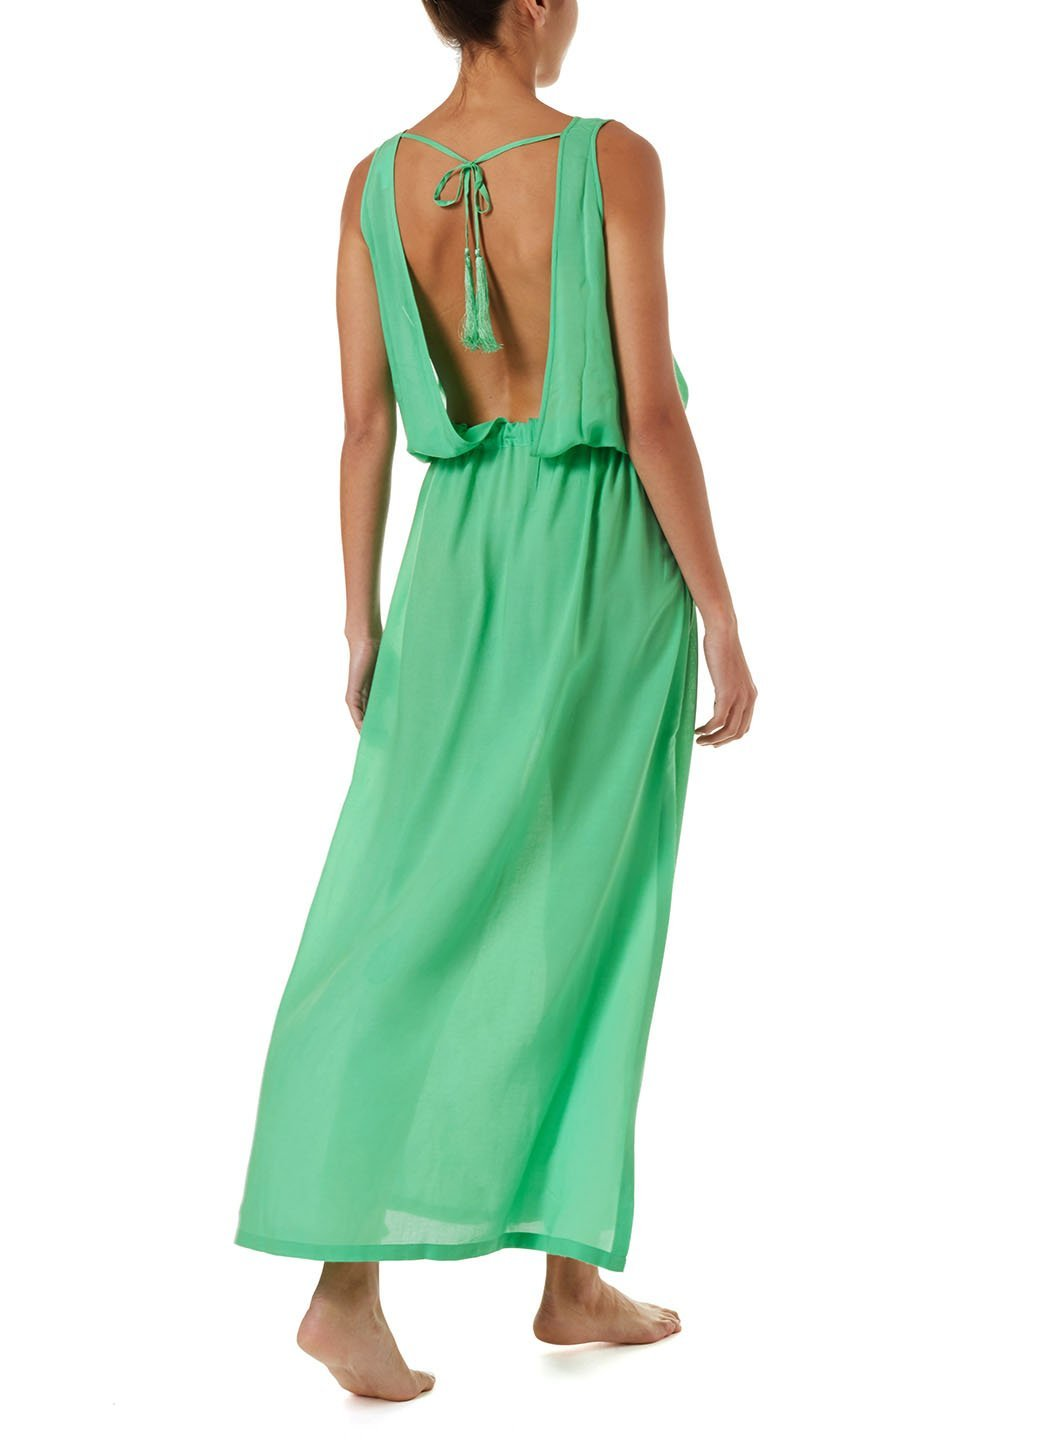 jacquie green laceup belted maxi dress 2019 B